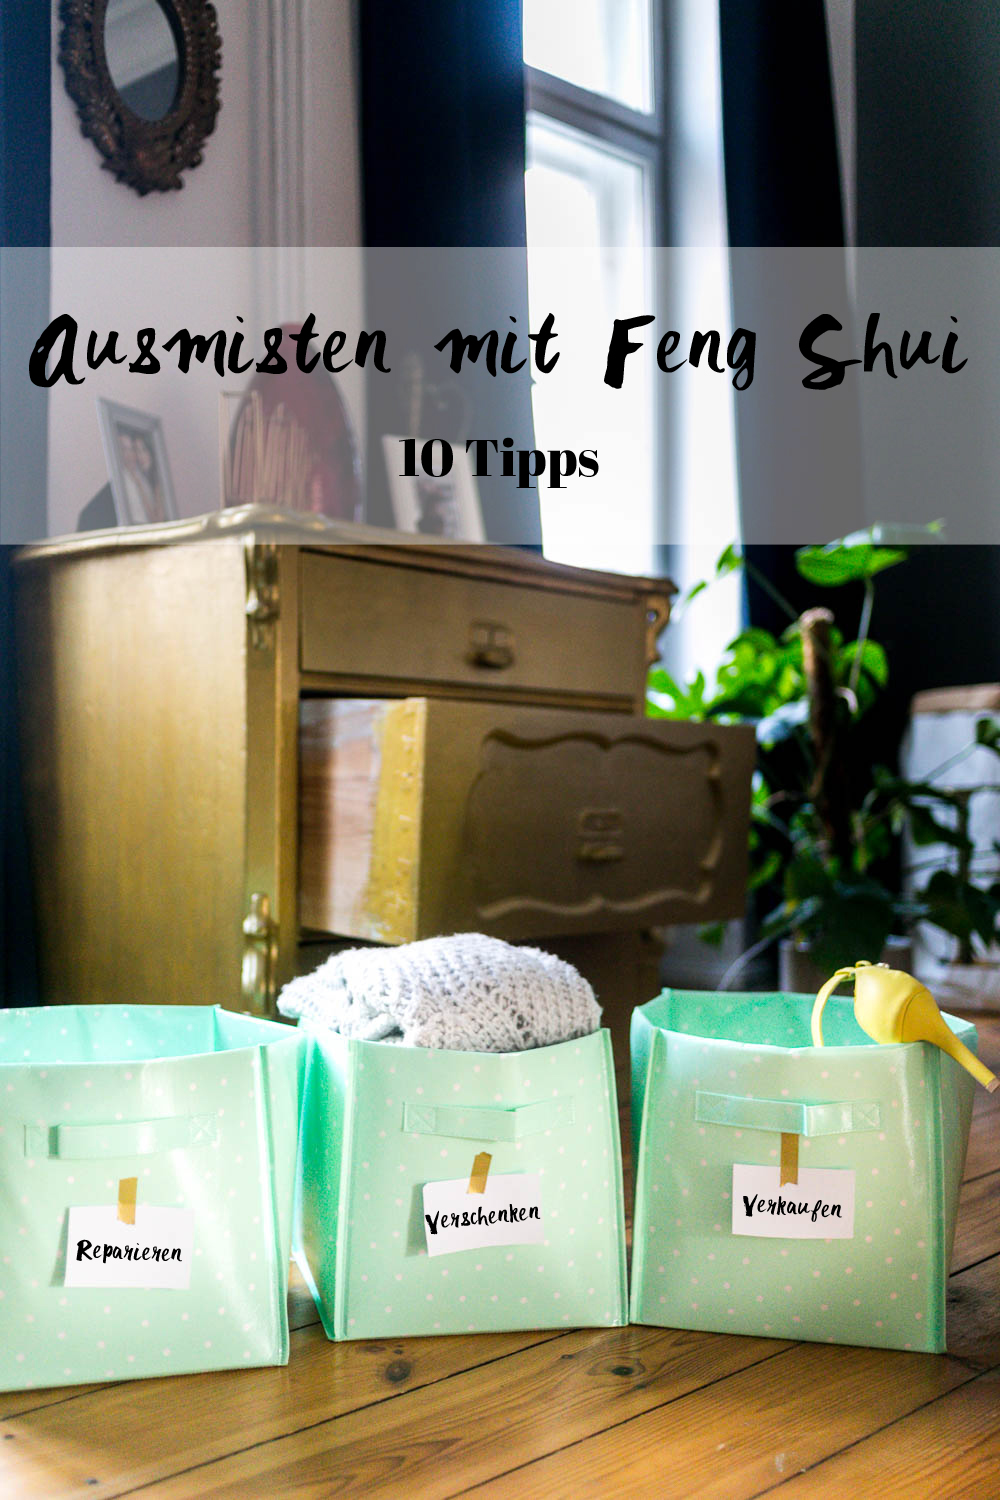 ausmisten mit feng shui 10 tipps der lagebericht the kaisers. Black Bedroom Furniture Sets. Home Design Ideas